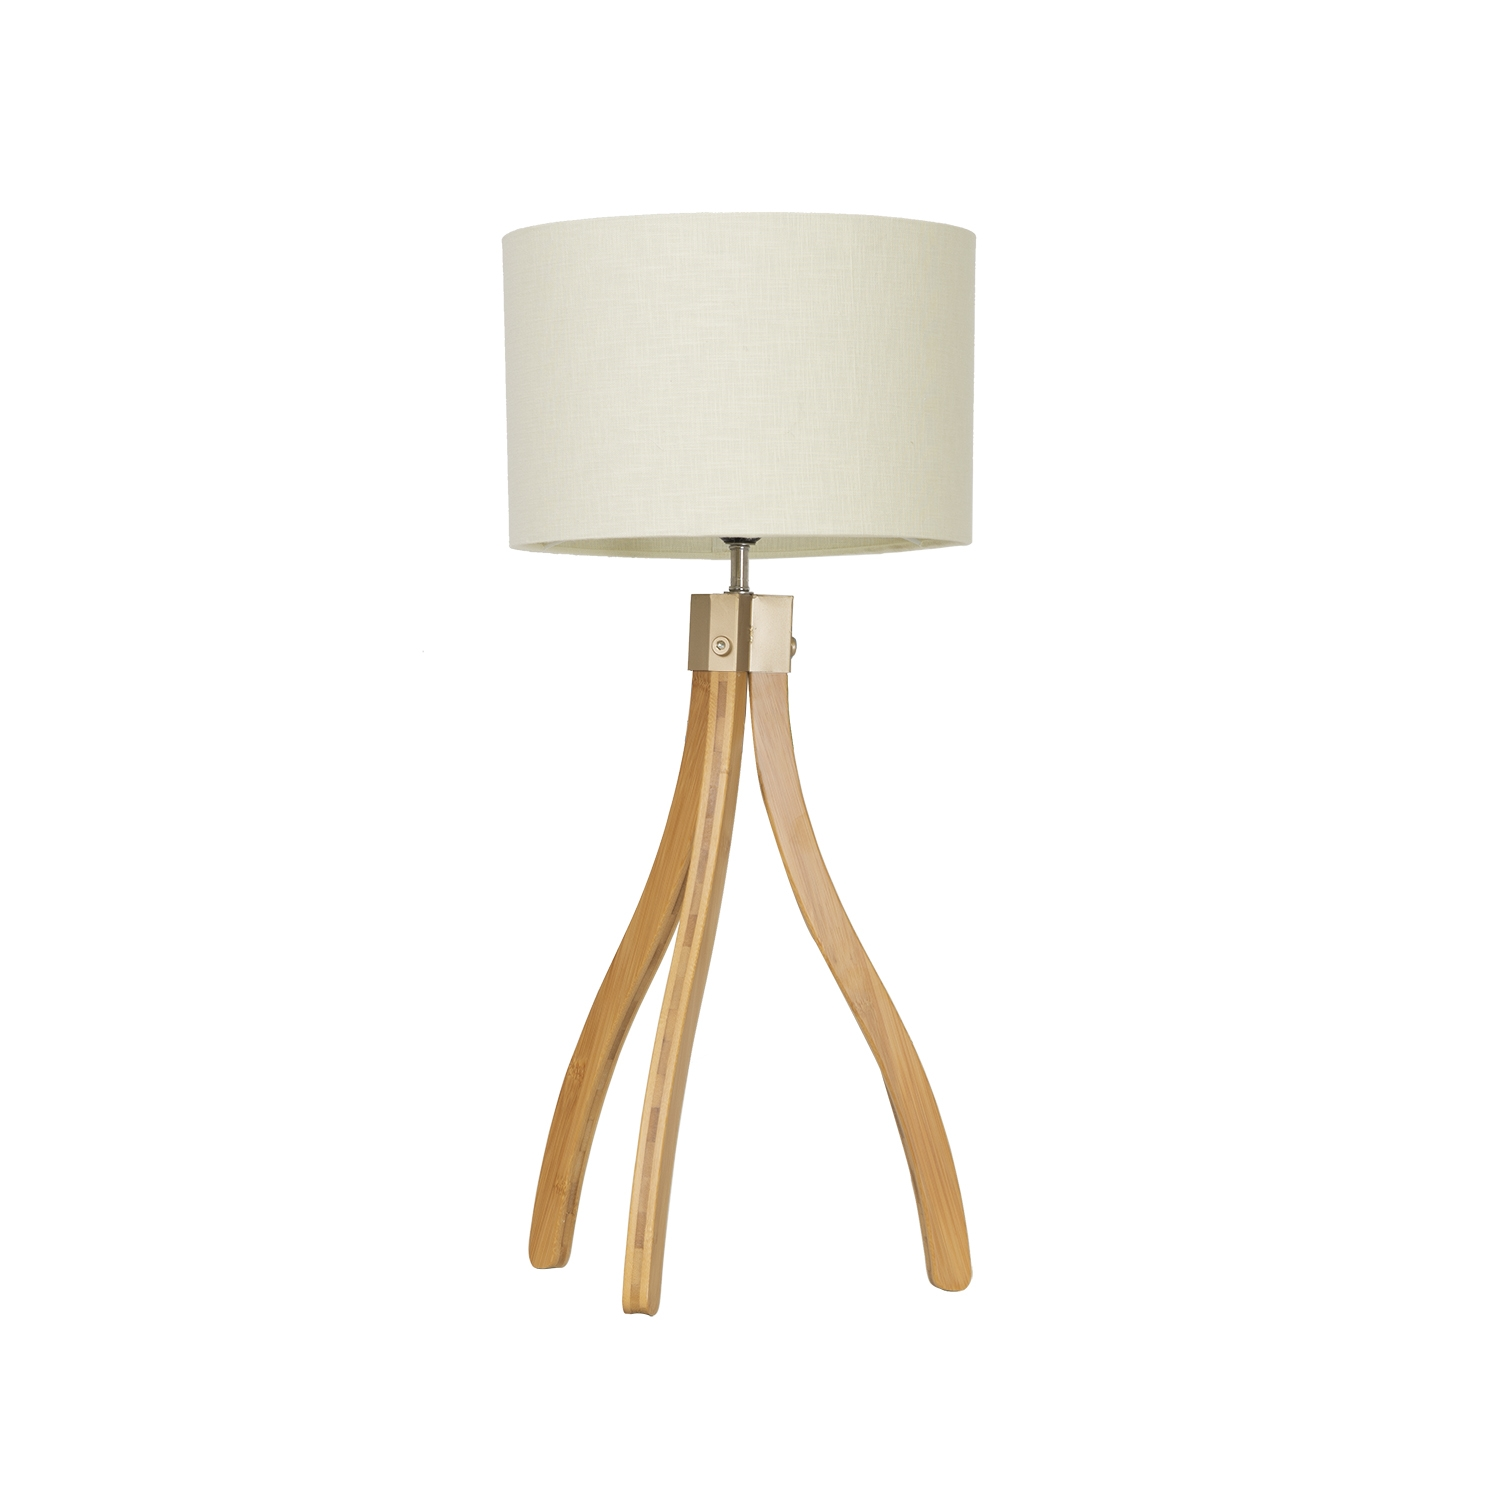 Image of Casa Curved Tripod Table Lamp, Natural Wood